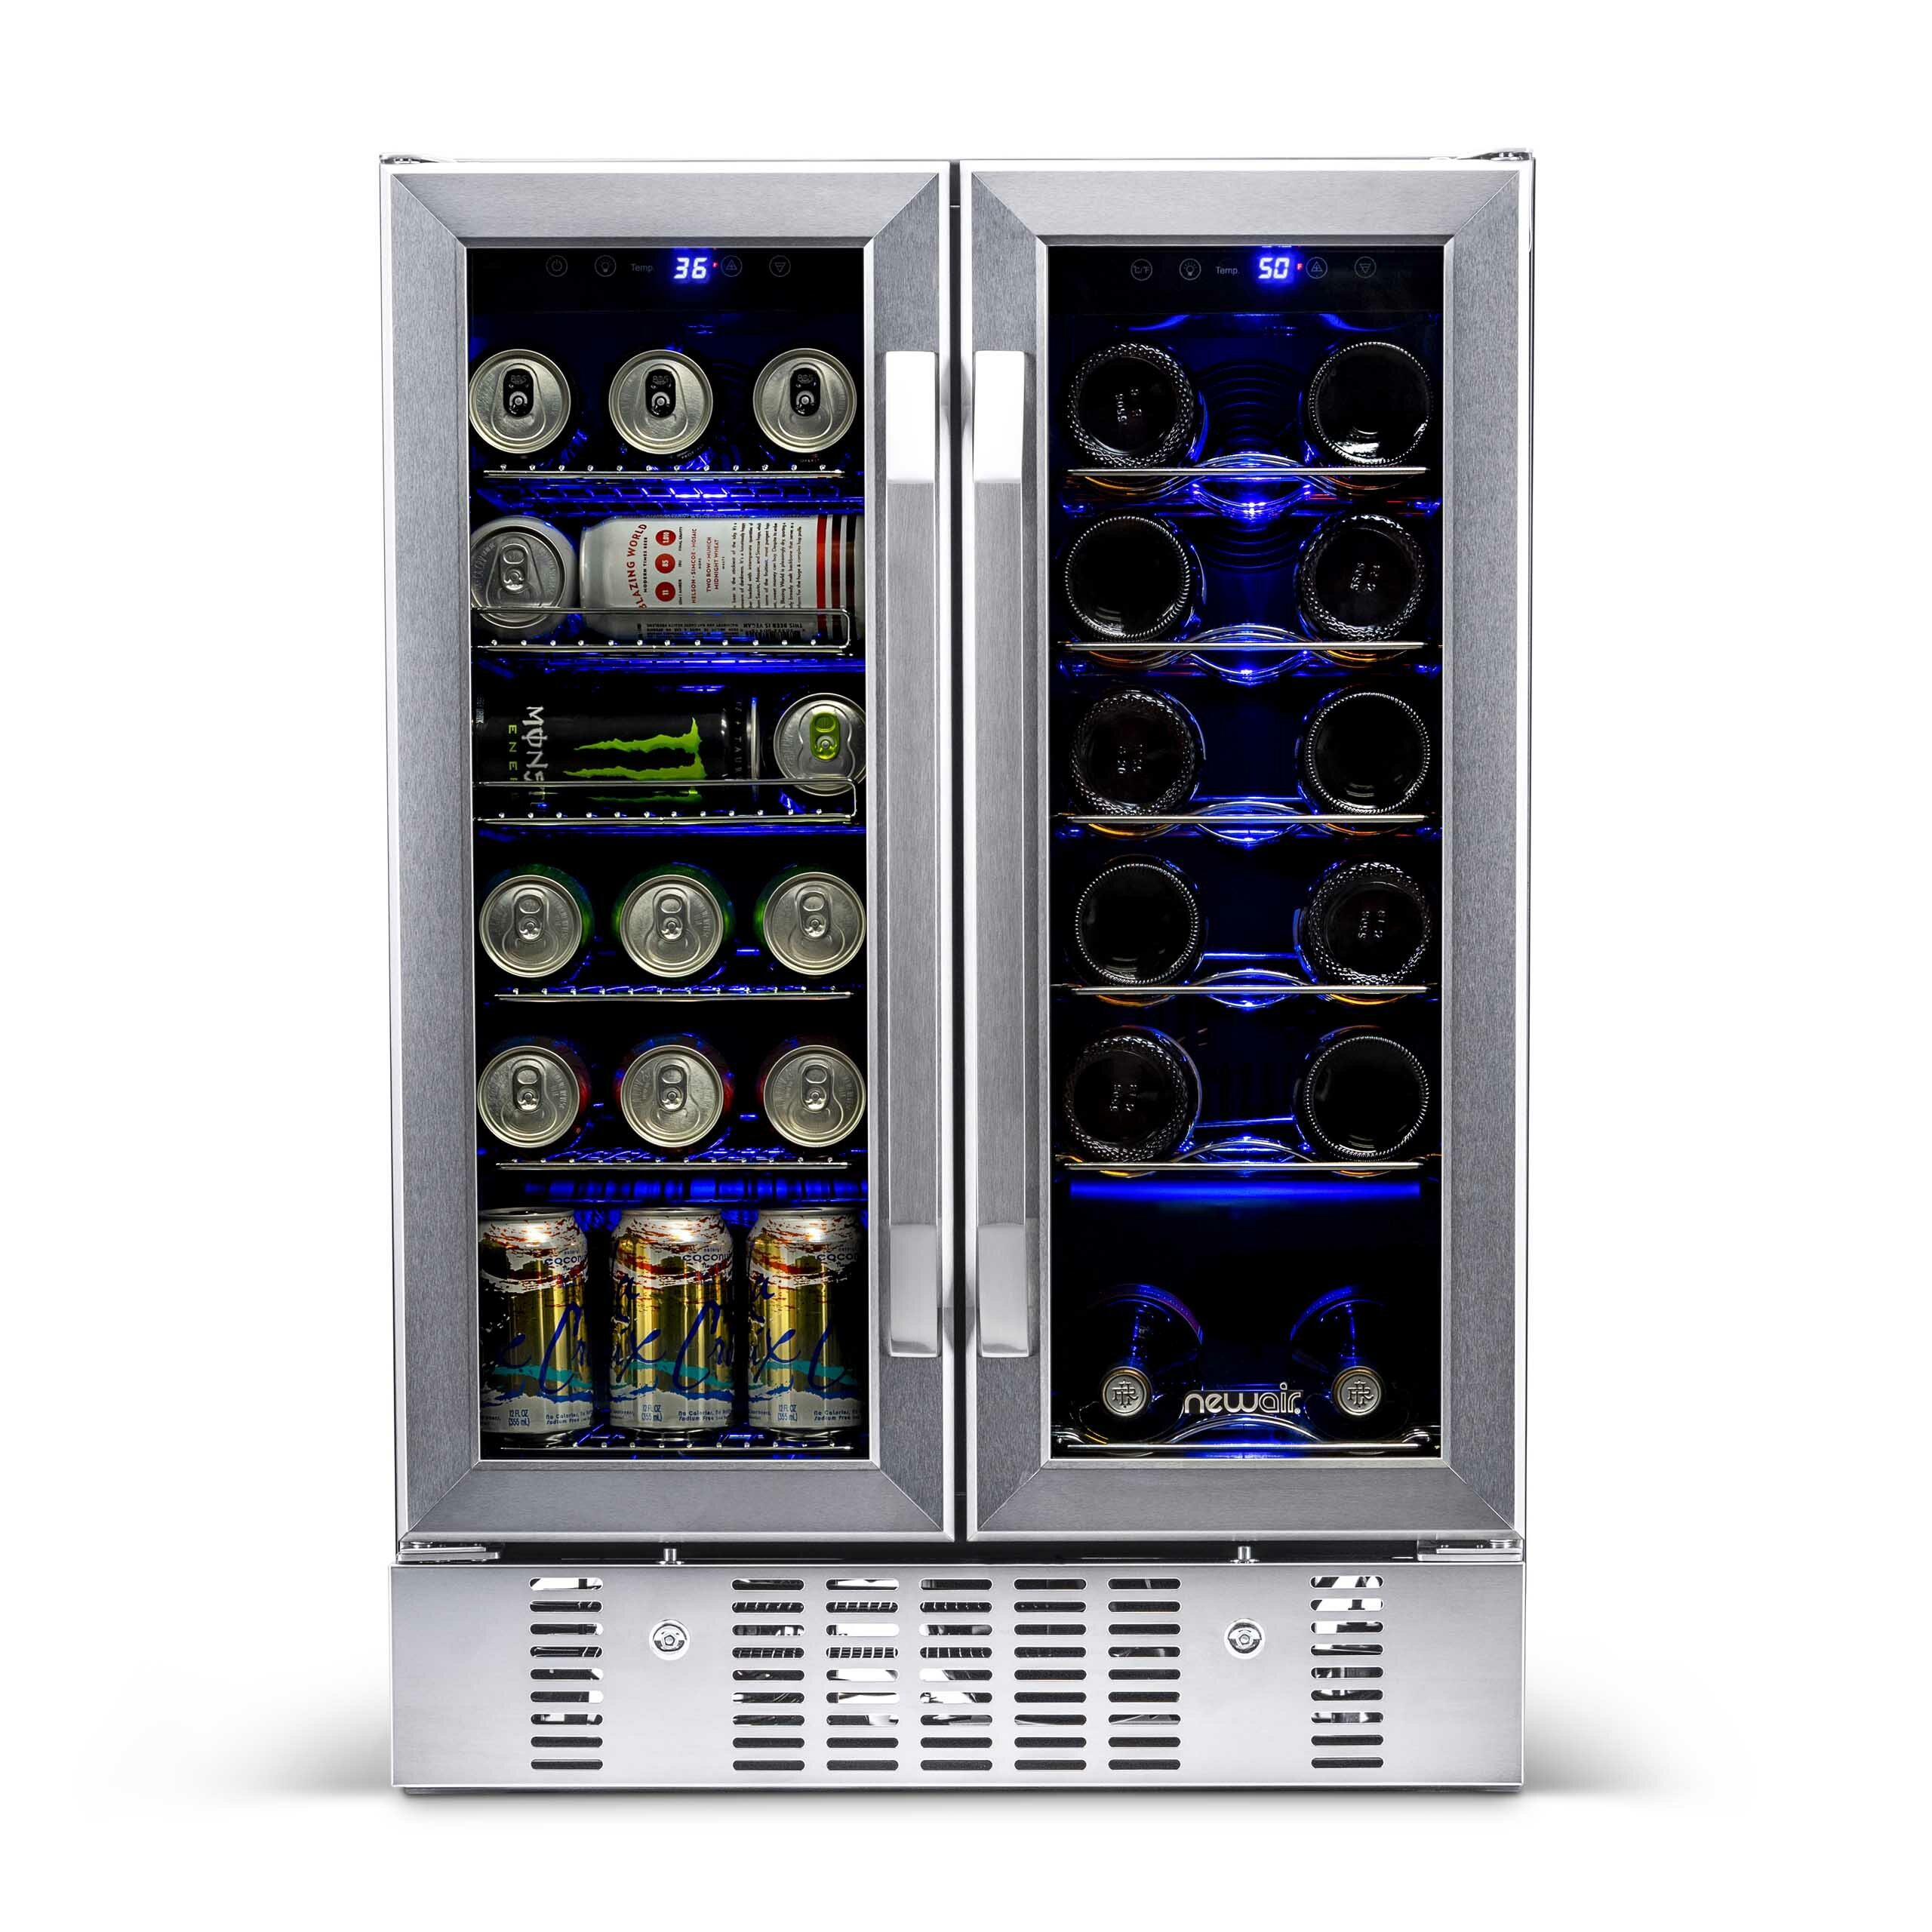 Newair 18 Bottle And 58 Can Dual Zone Freestanding Wine And Beverage Refrigerator Reviews Wayfair